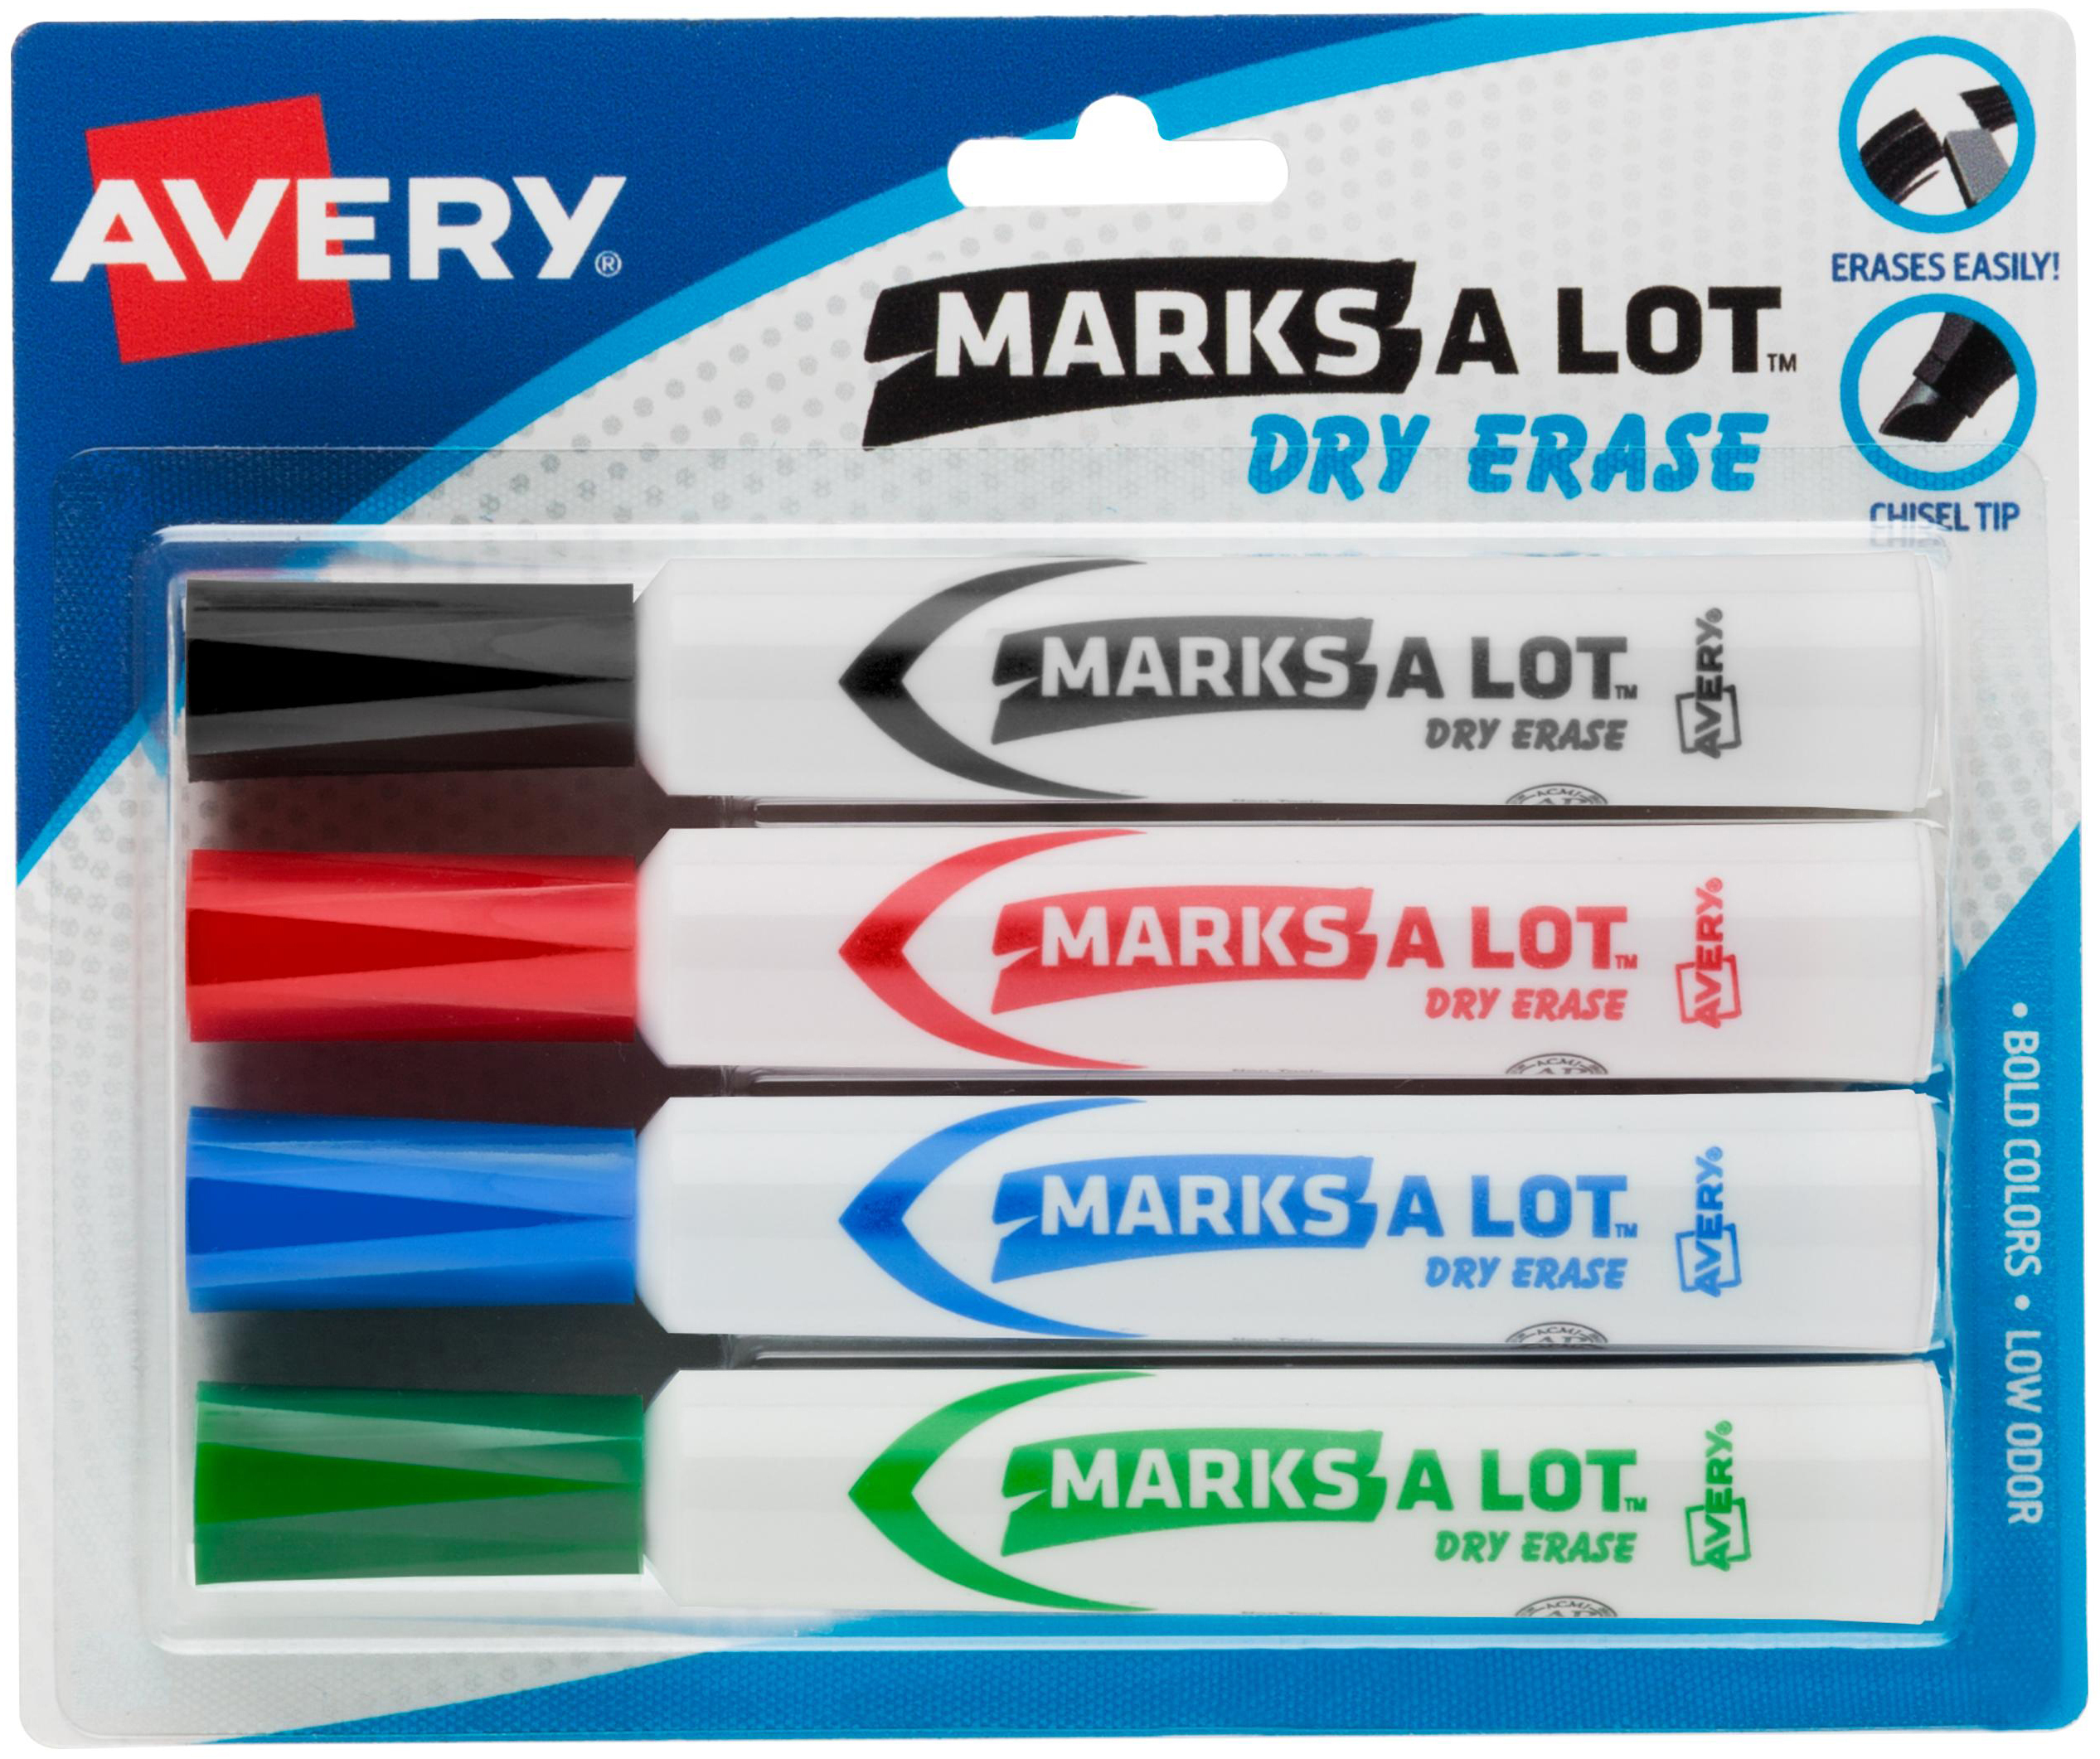 Avery® Marks A Lot Desk-Style Dry-Erase Markers 4pc